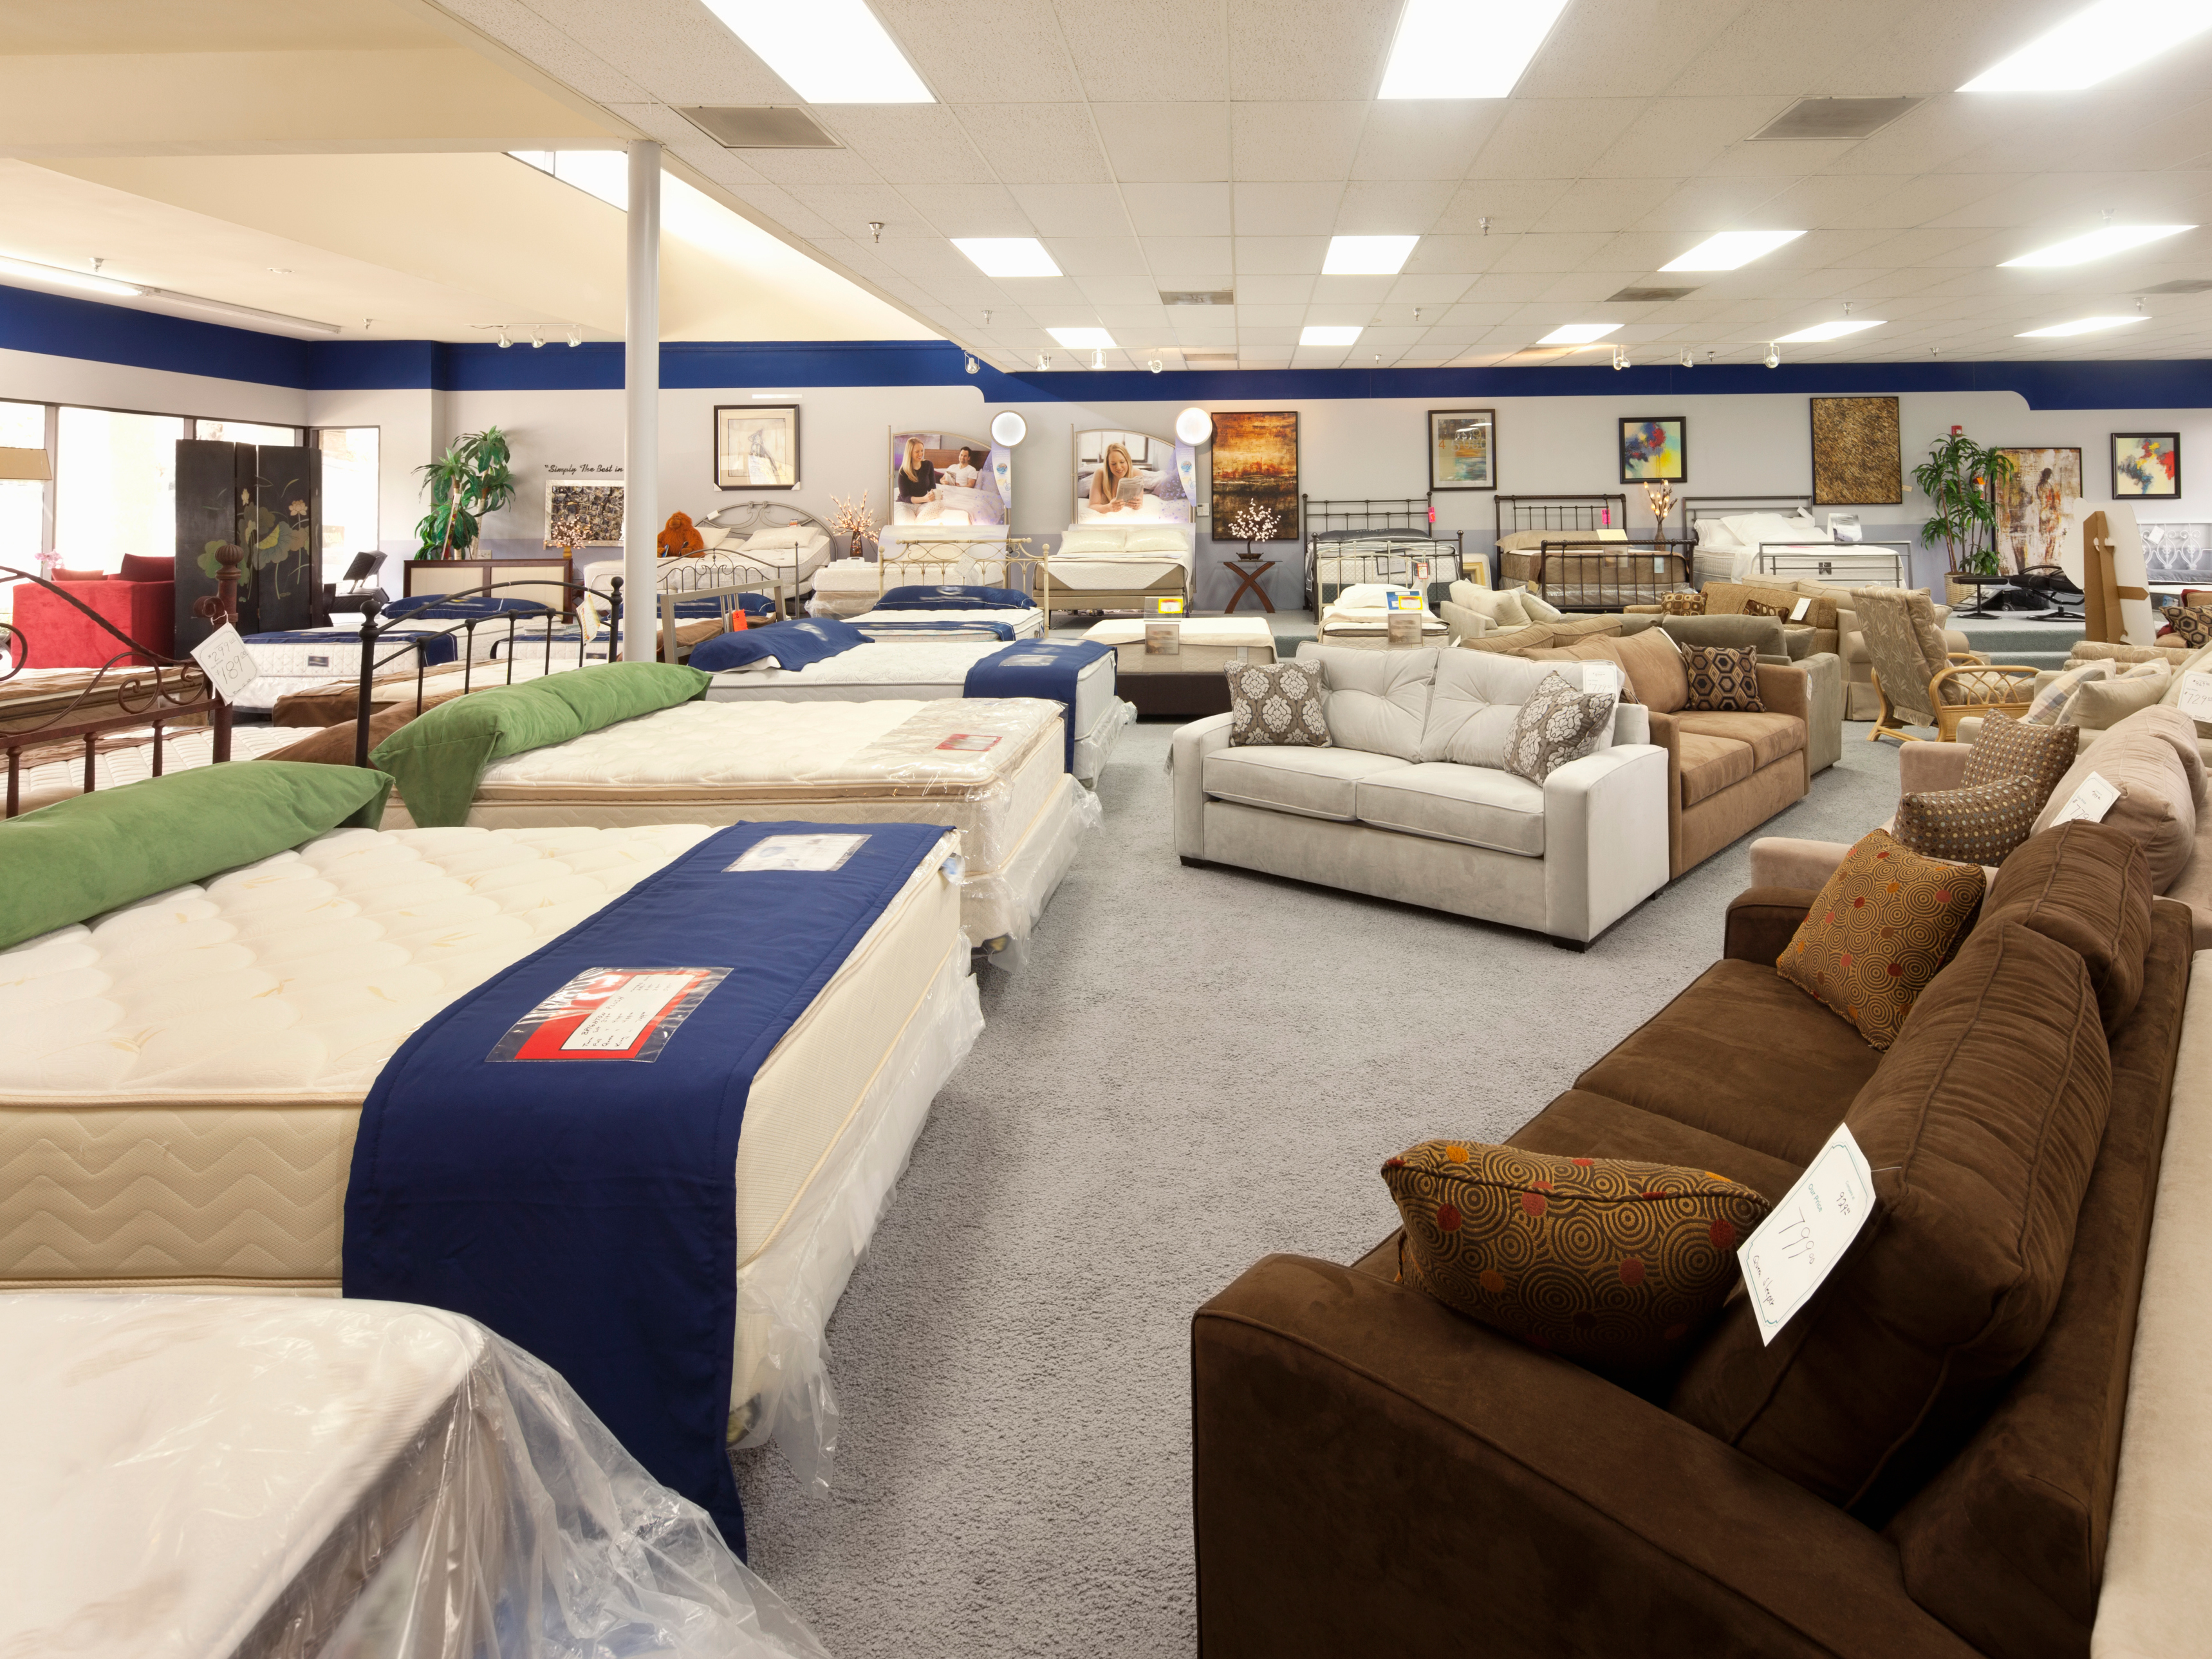 mattress img lower post free says anyone it mattresses sell prices because to can employee offer company s the tries paying area not wuwm milwaukee store showrooms